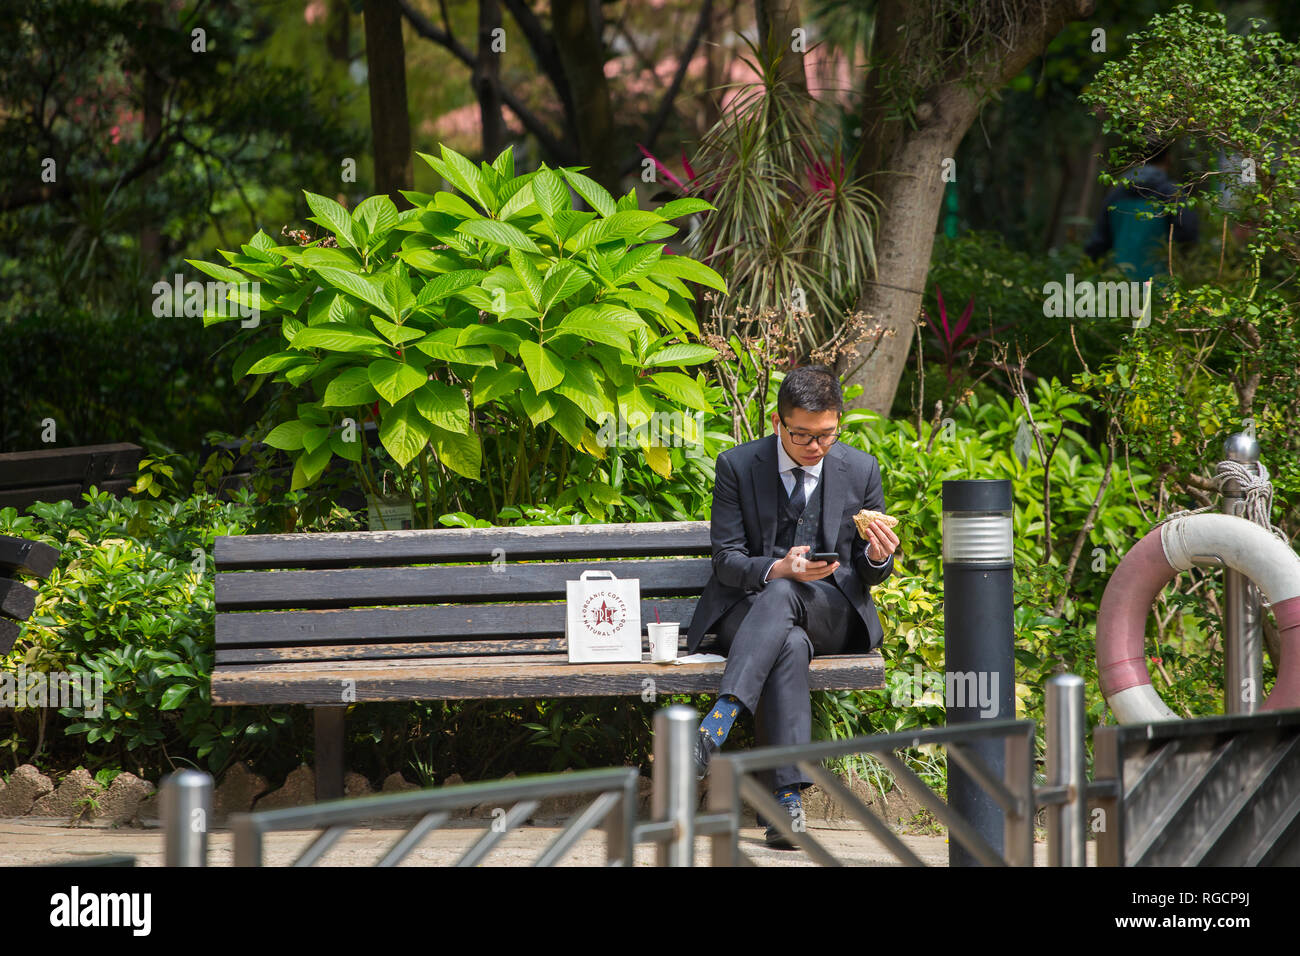 A man in suit sitting on a bench at Hong Kong Park, holding a sandwich on his hand for his outdoor lunch to recharge and relax his mind. - Stock Image